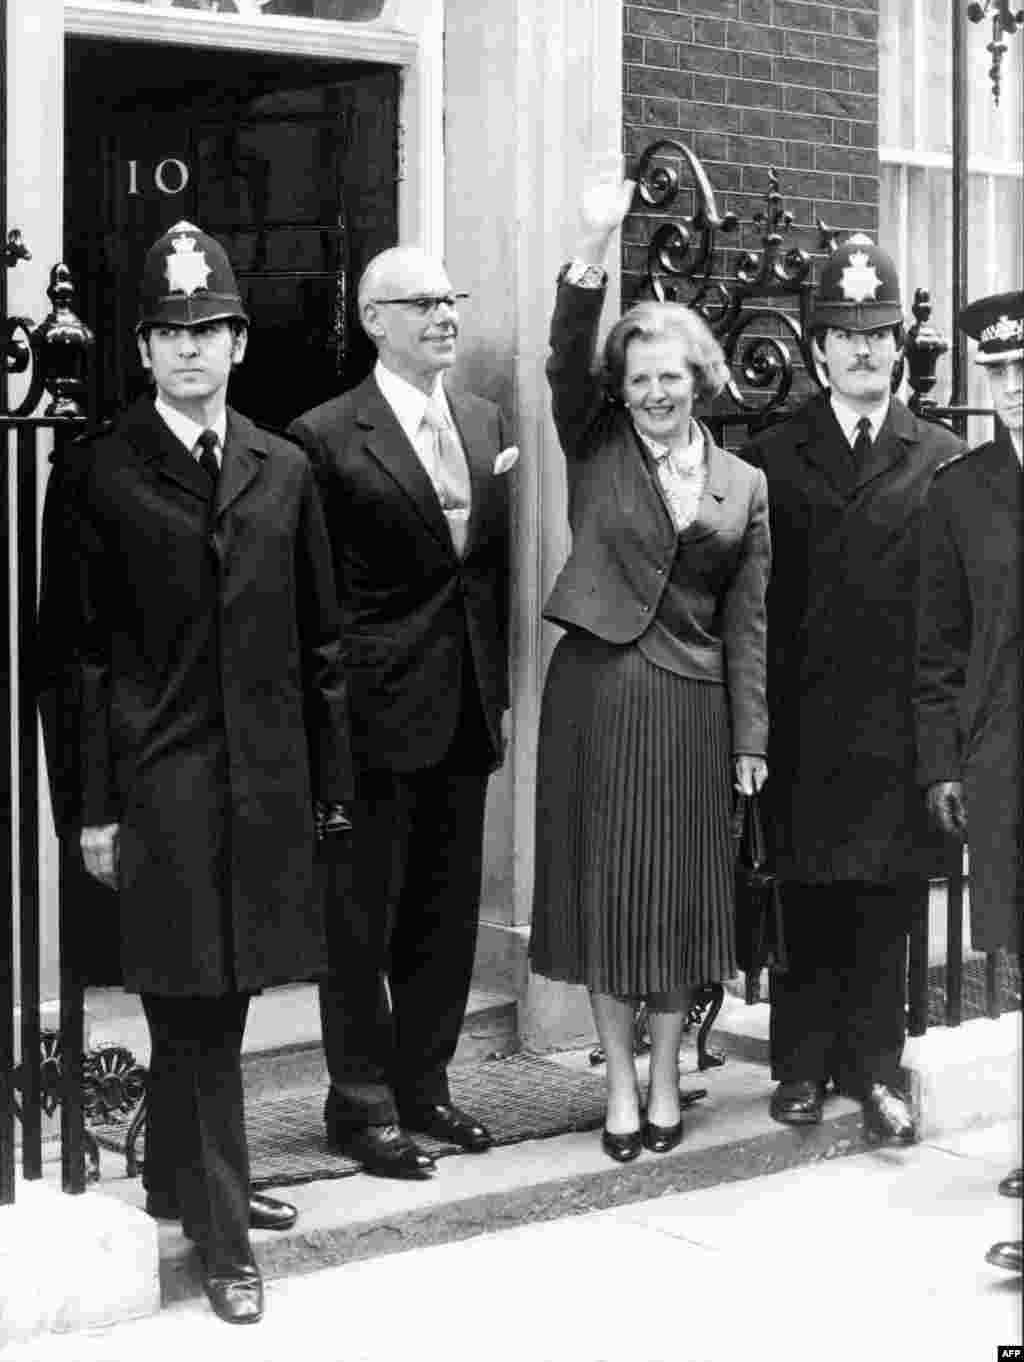 British Prime Minister Margaret Thatcher waves as she arrives at 10 Downing Street to take office on May 4, 1979.